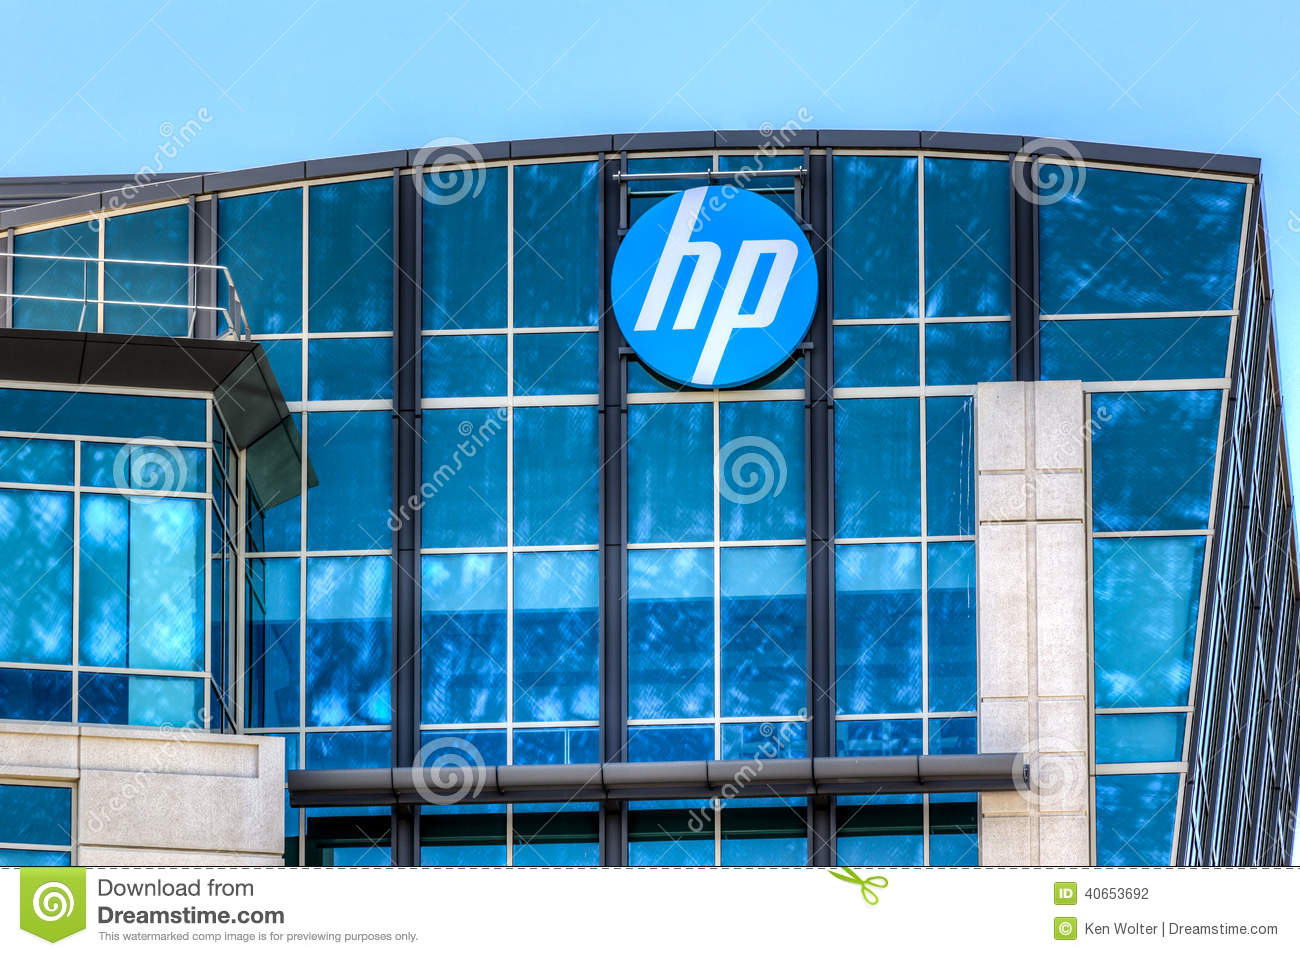 Hewlett packard corporate headquarters in silicon valley editorial hewlett packard corporate headquarters in silicon valley kristyandbryce Choice Image